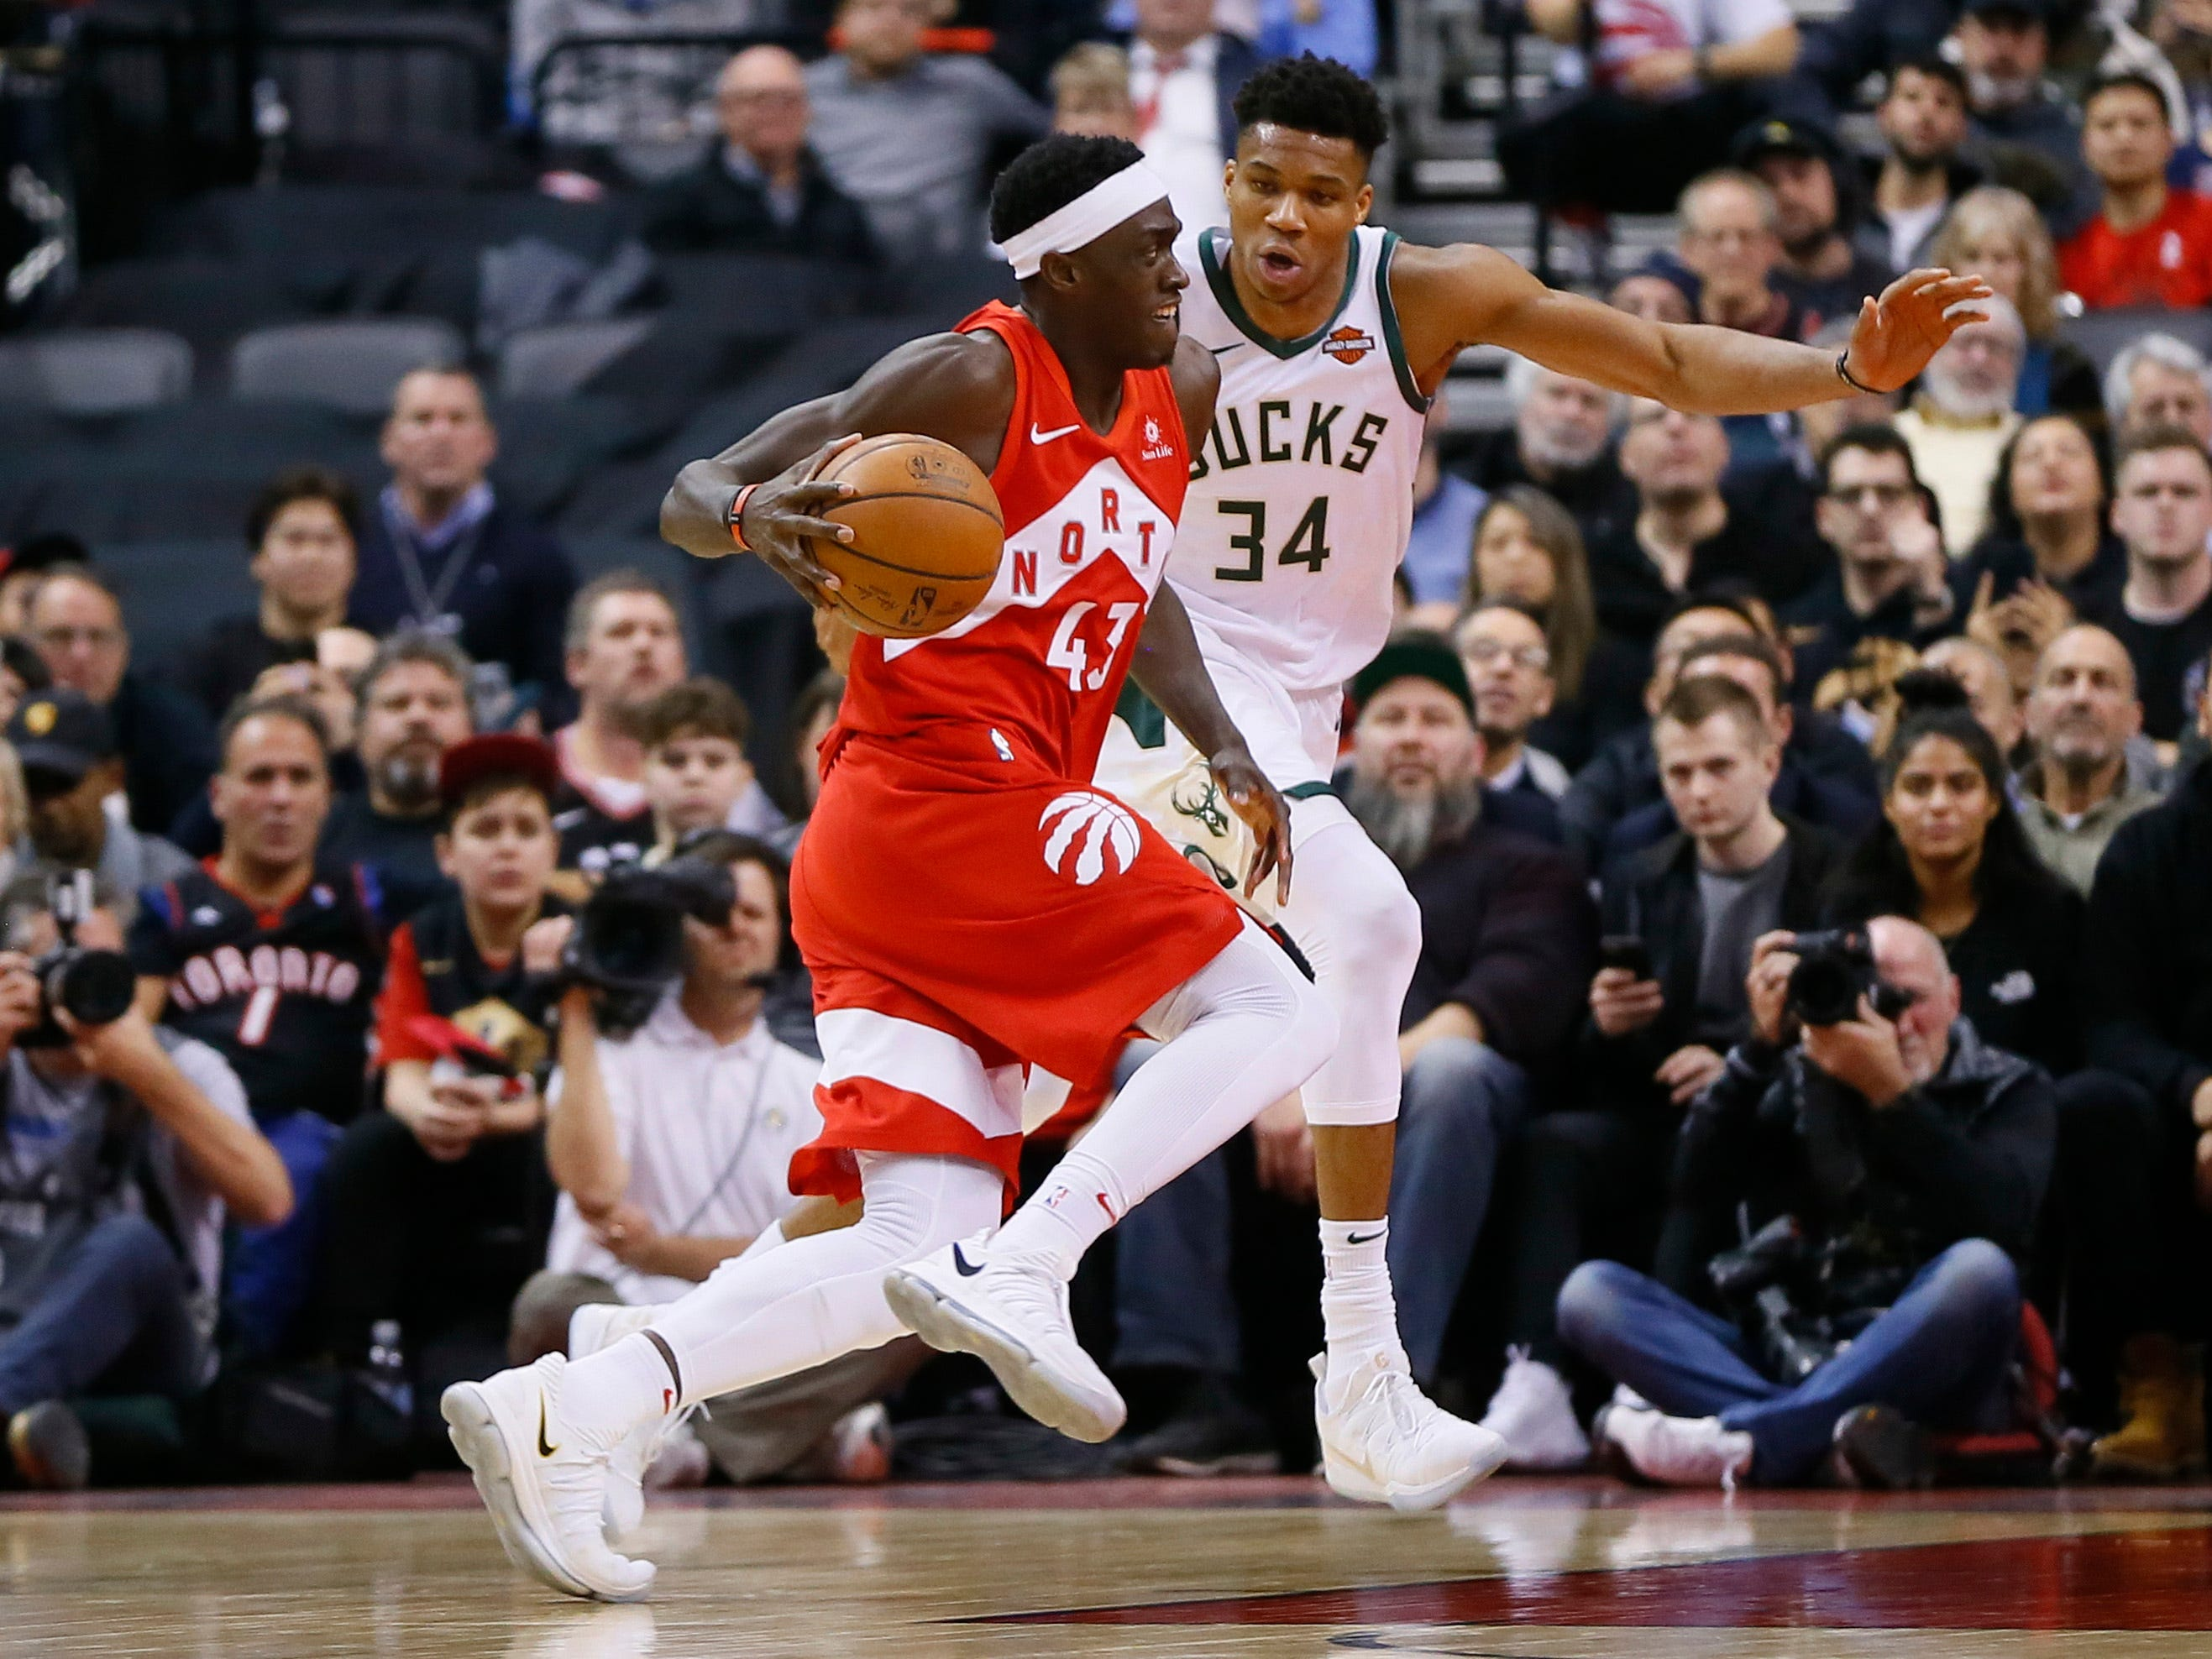 Raptors forward Pascal Siakam, driving against Gianis Antetokounmpo during the second half, was a thorn in the Bucks' side on Thursday night with a game-high 28 points.